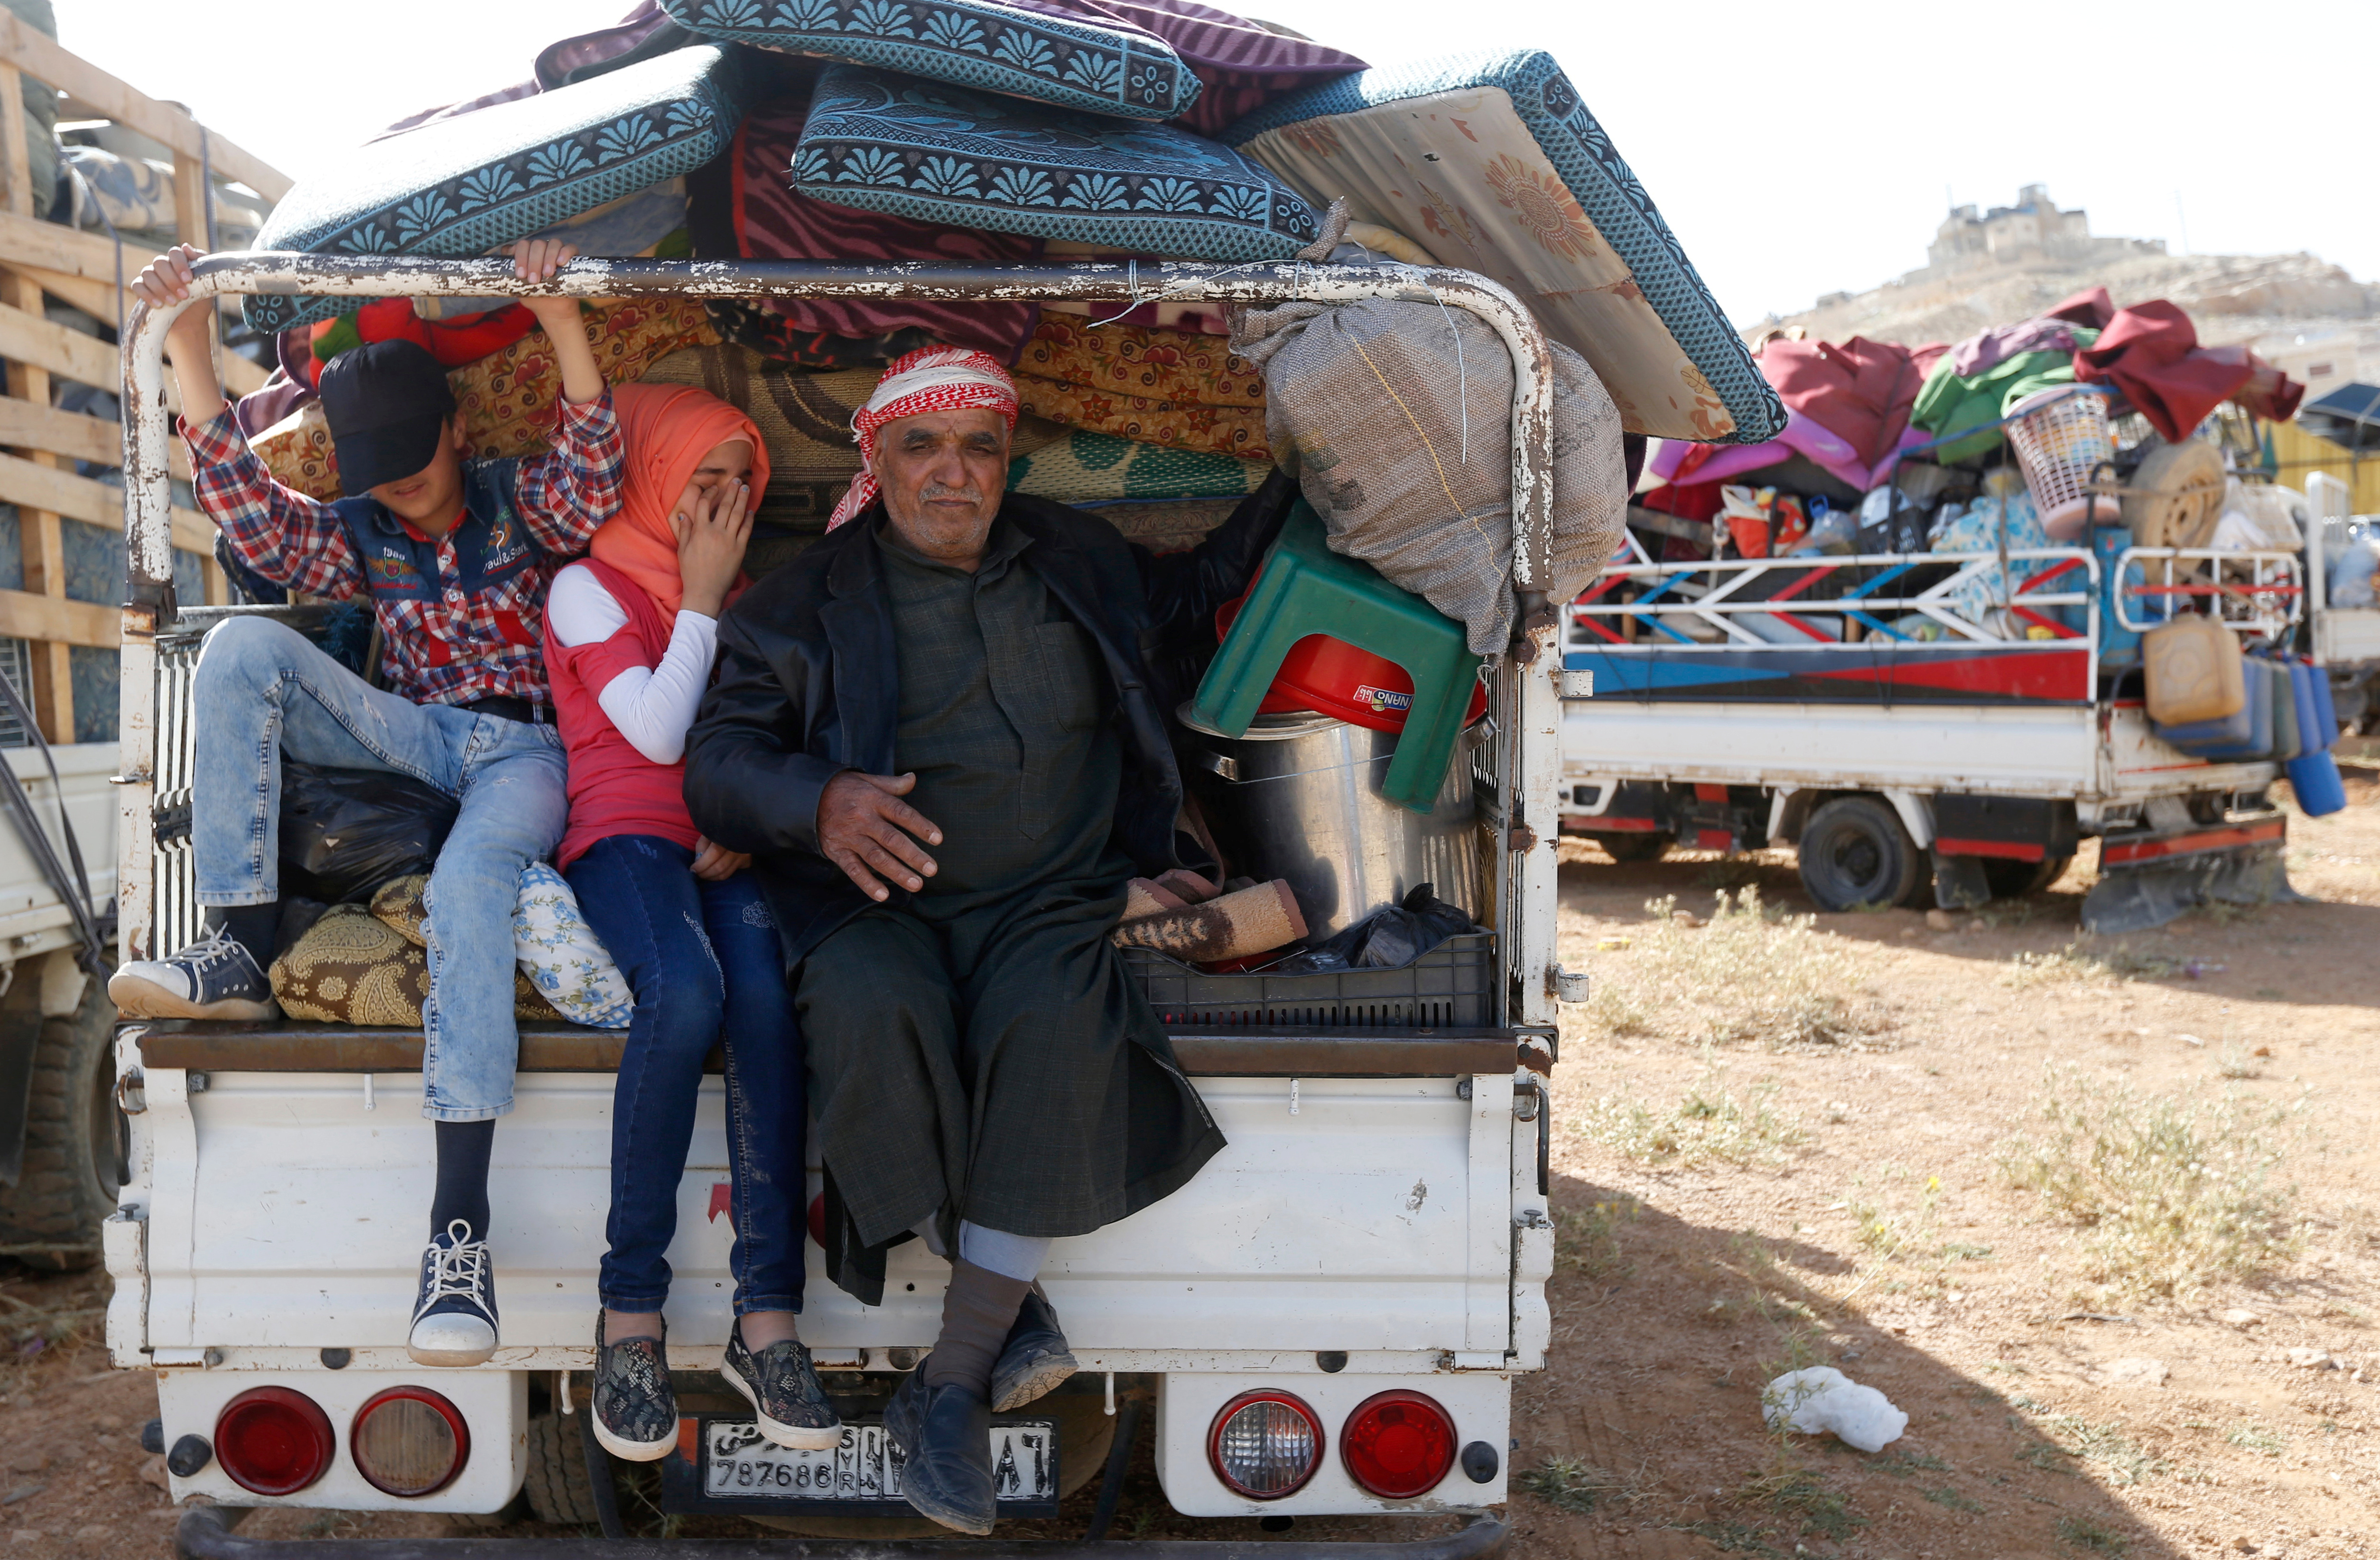 Syrian refugees prepare to return to Syria from the Lebanese border town of Arsal, Lebanon, June 28, 2018.